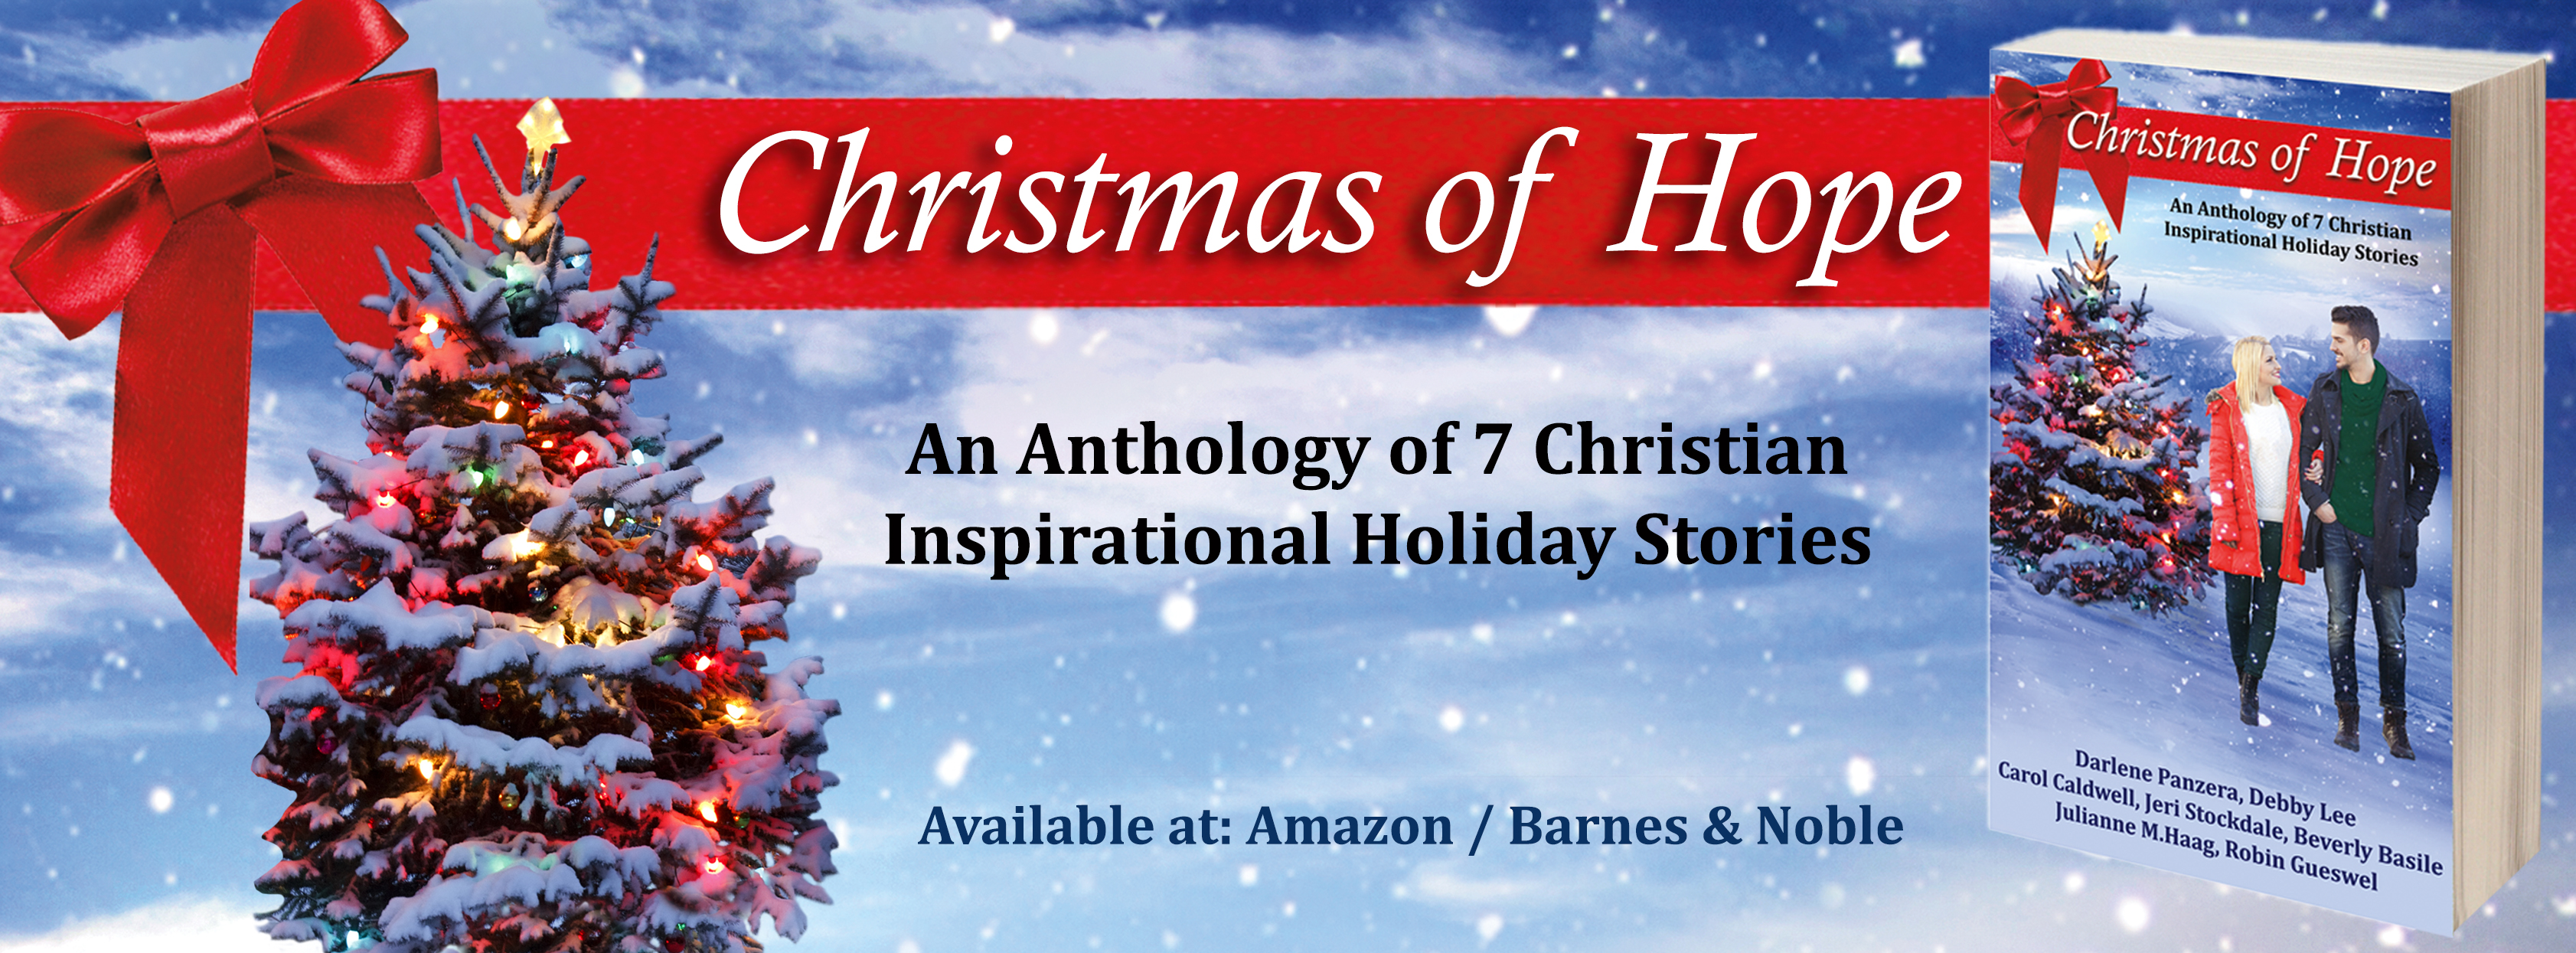 Christmas of Hope: An Anthology of 7 Christian Inspirational Holiday Stories